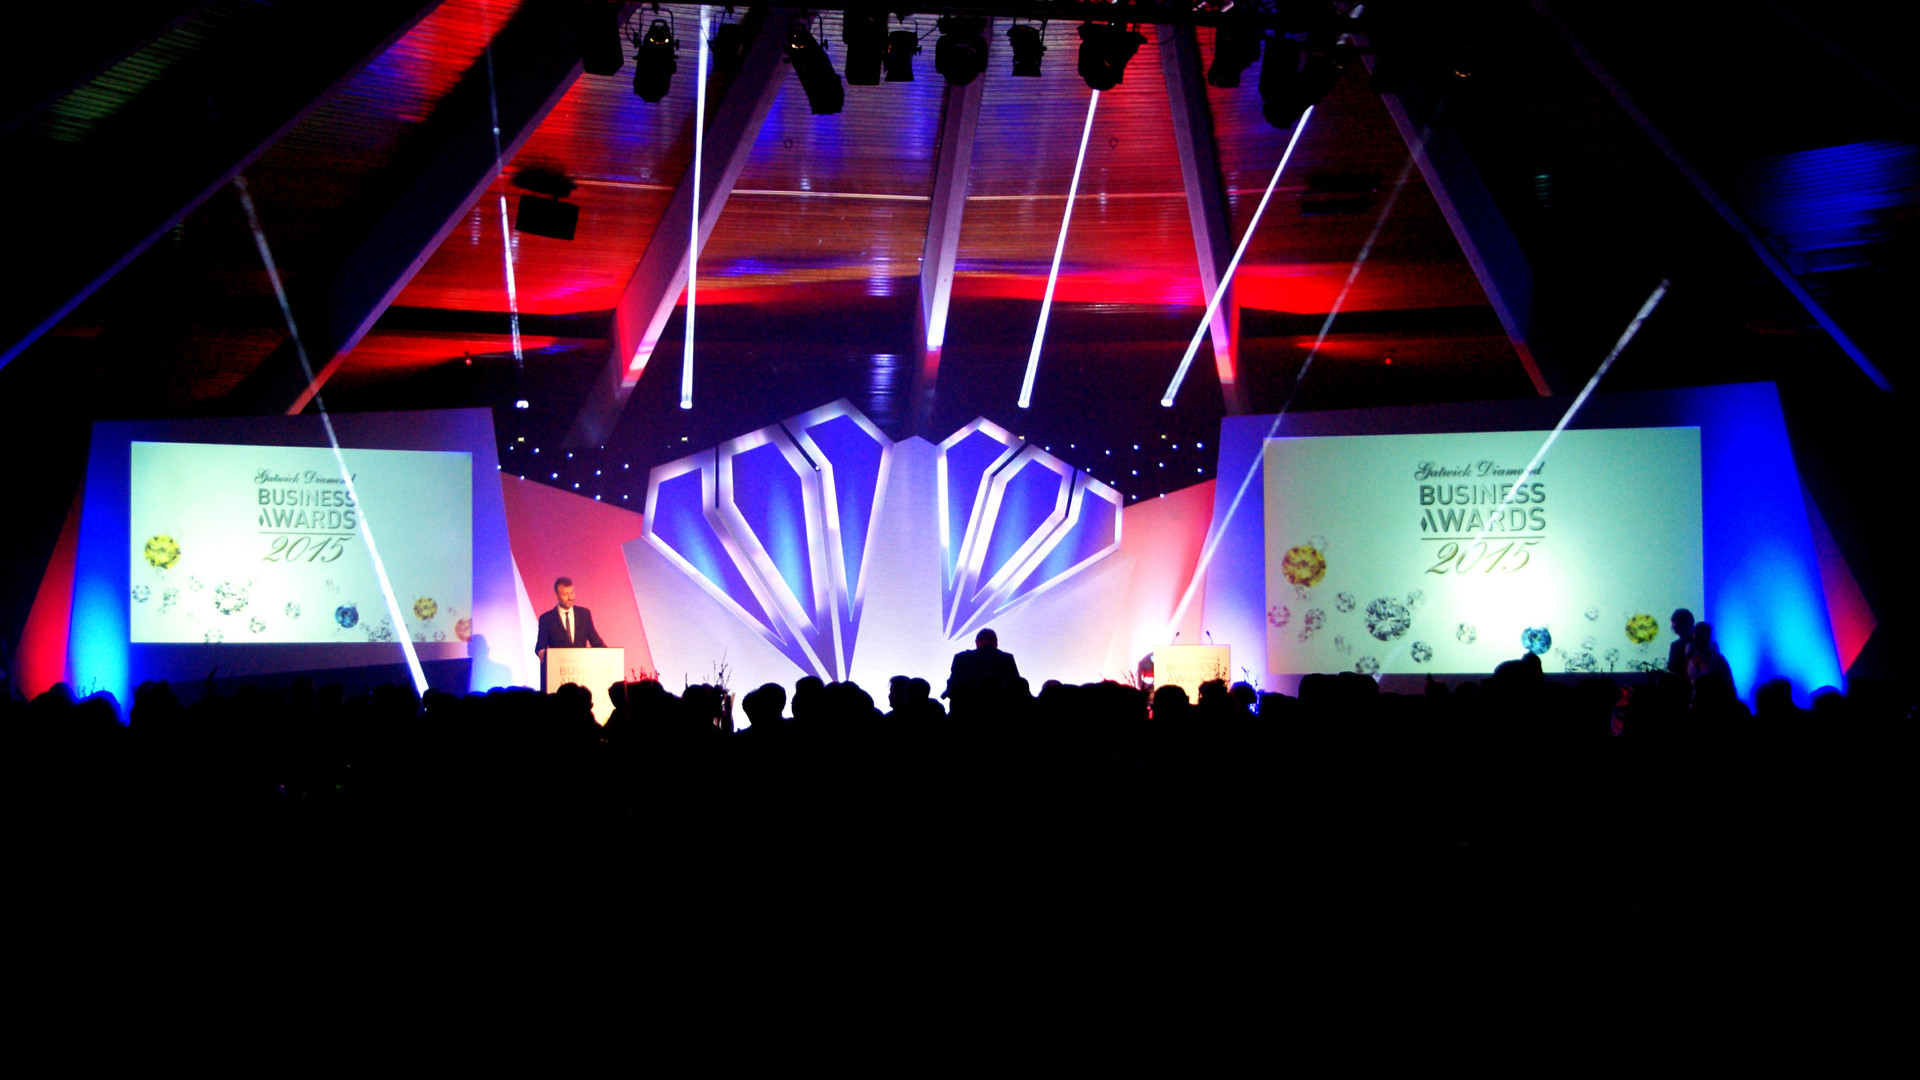 Gatwick Diamond Business Awards